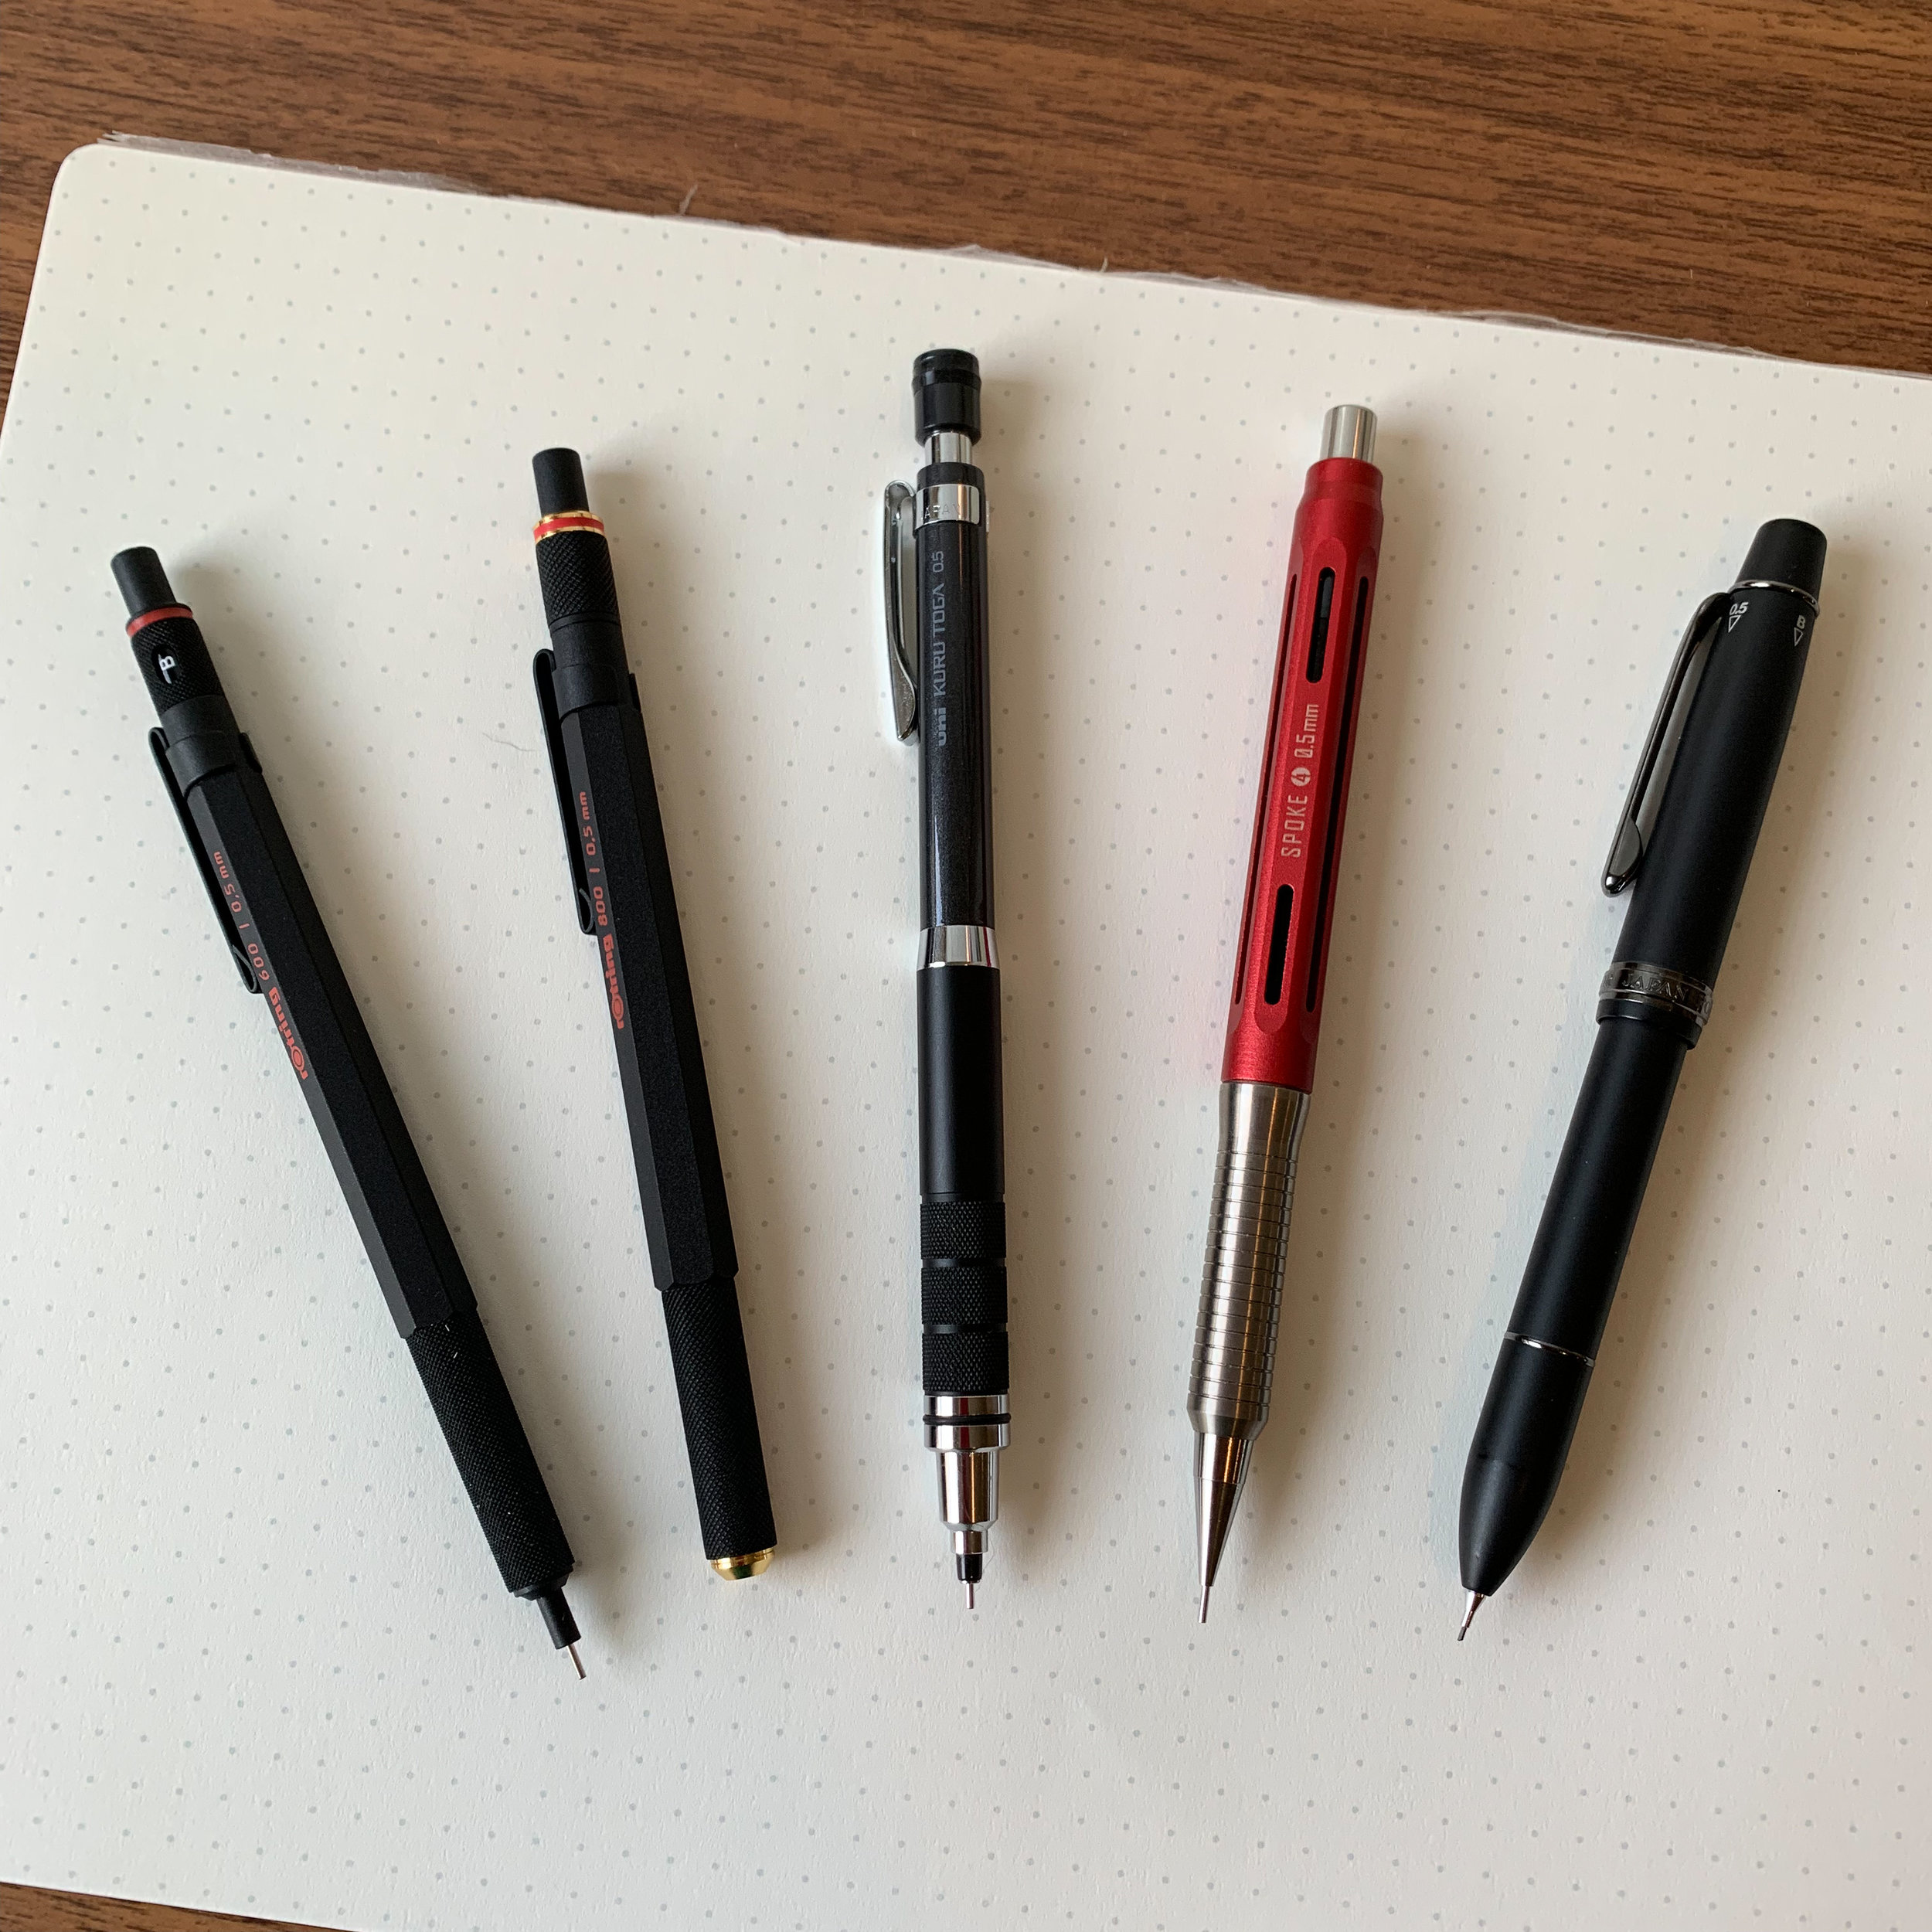 From left: Rotring 600, Rotring 800, Uni Kuru Toga Roulette, Spoke Pencil Version 4, and Sailor Imperial Black Multi Pen.